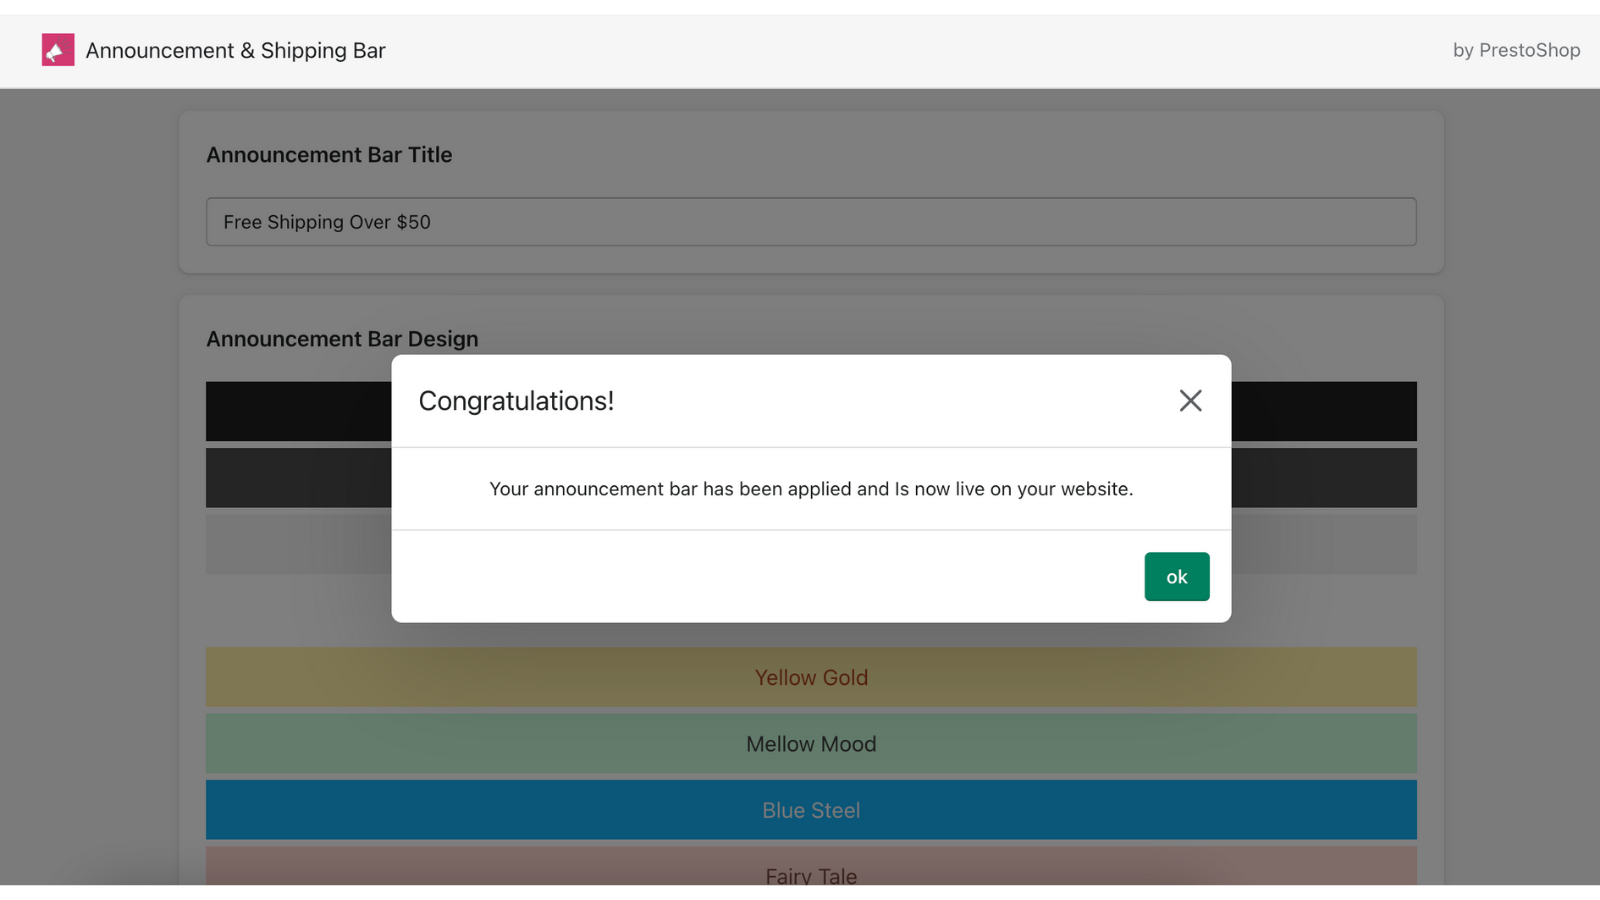 Publish and confirm your announcement bar is live